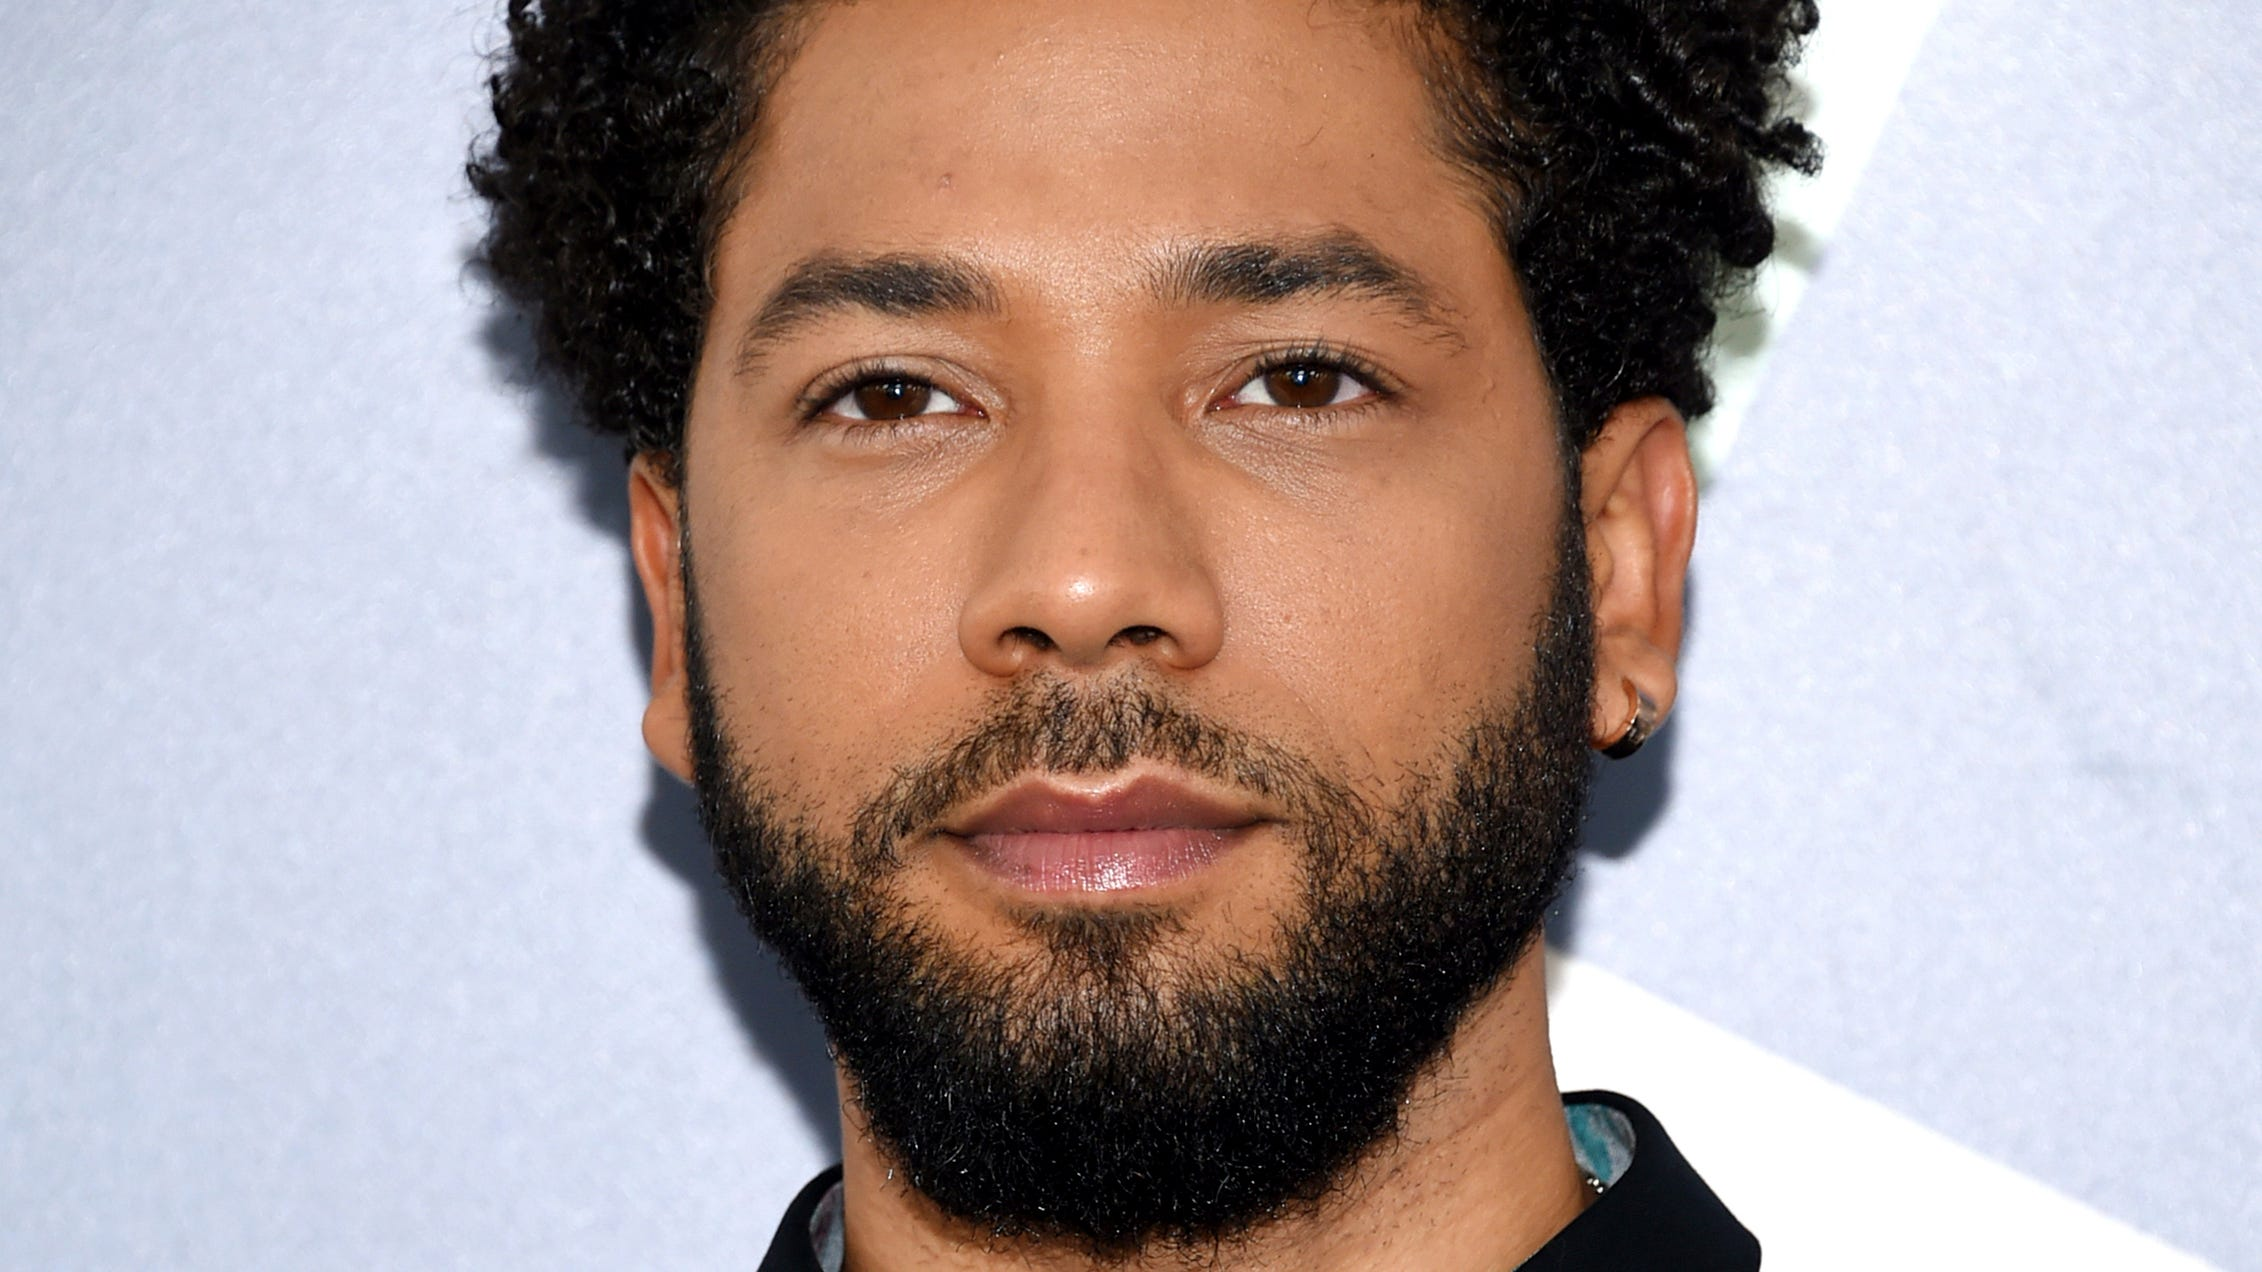 Jussie Smollett hate attack claim: 'Bogus police reports cause real harm,' police say